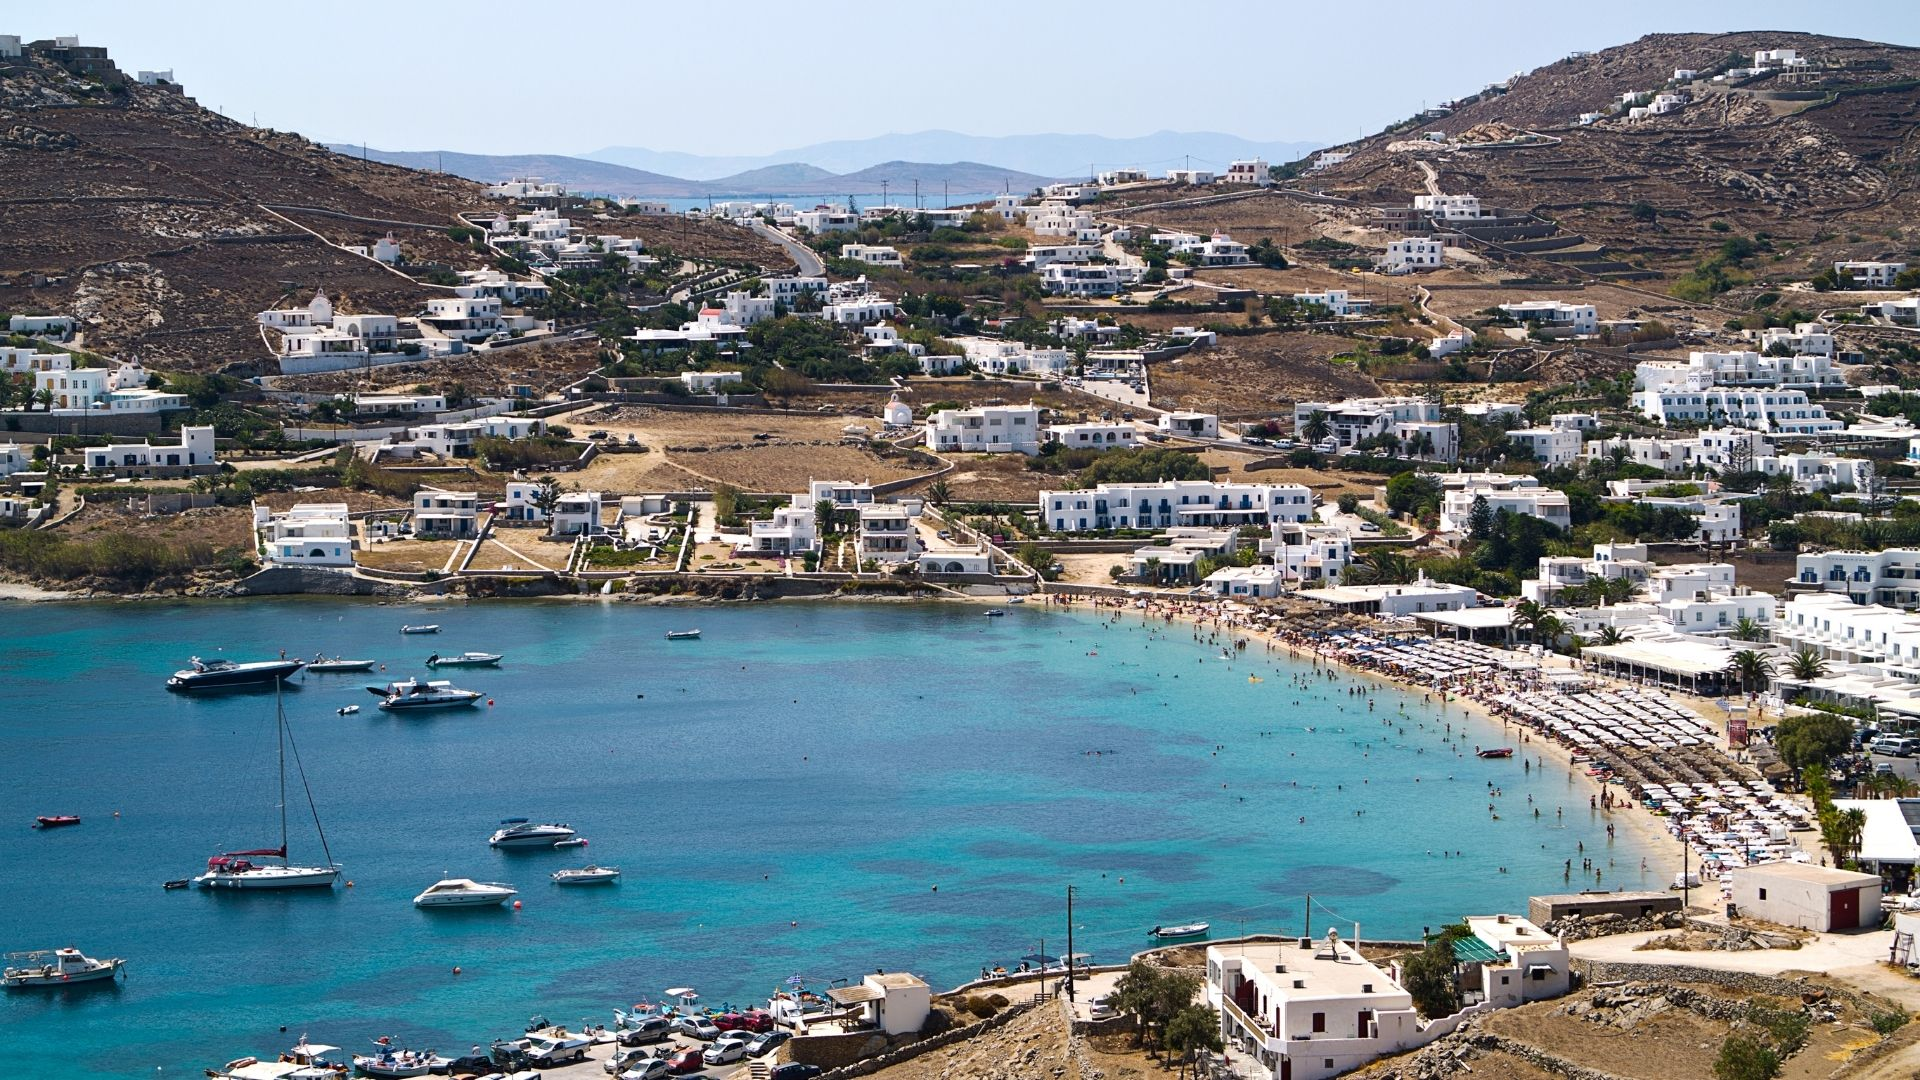 The seaside village of Ornos - place to stay in Mykonos